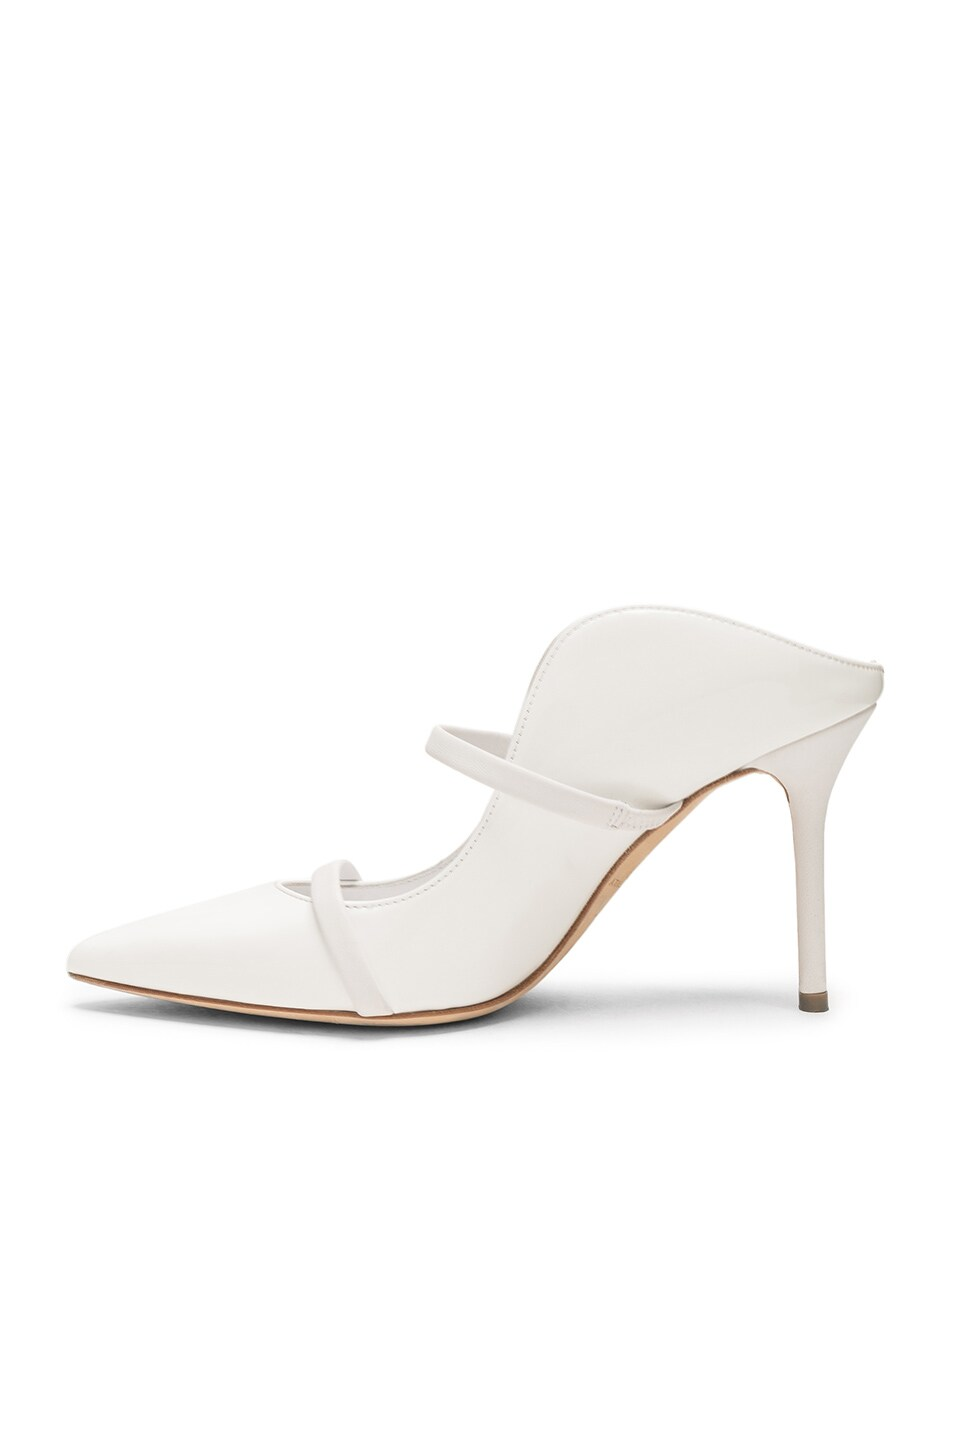 Image 5 of Malone Souliers Maureen Heel in White